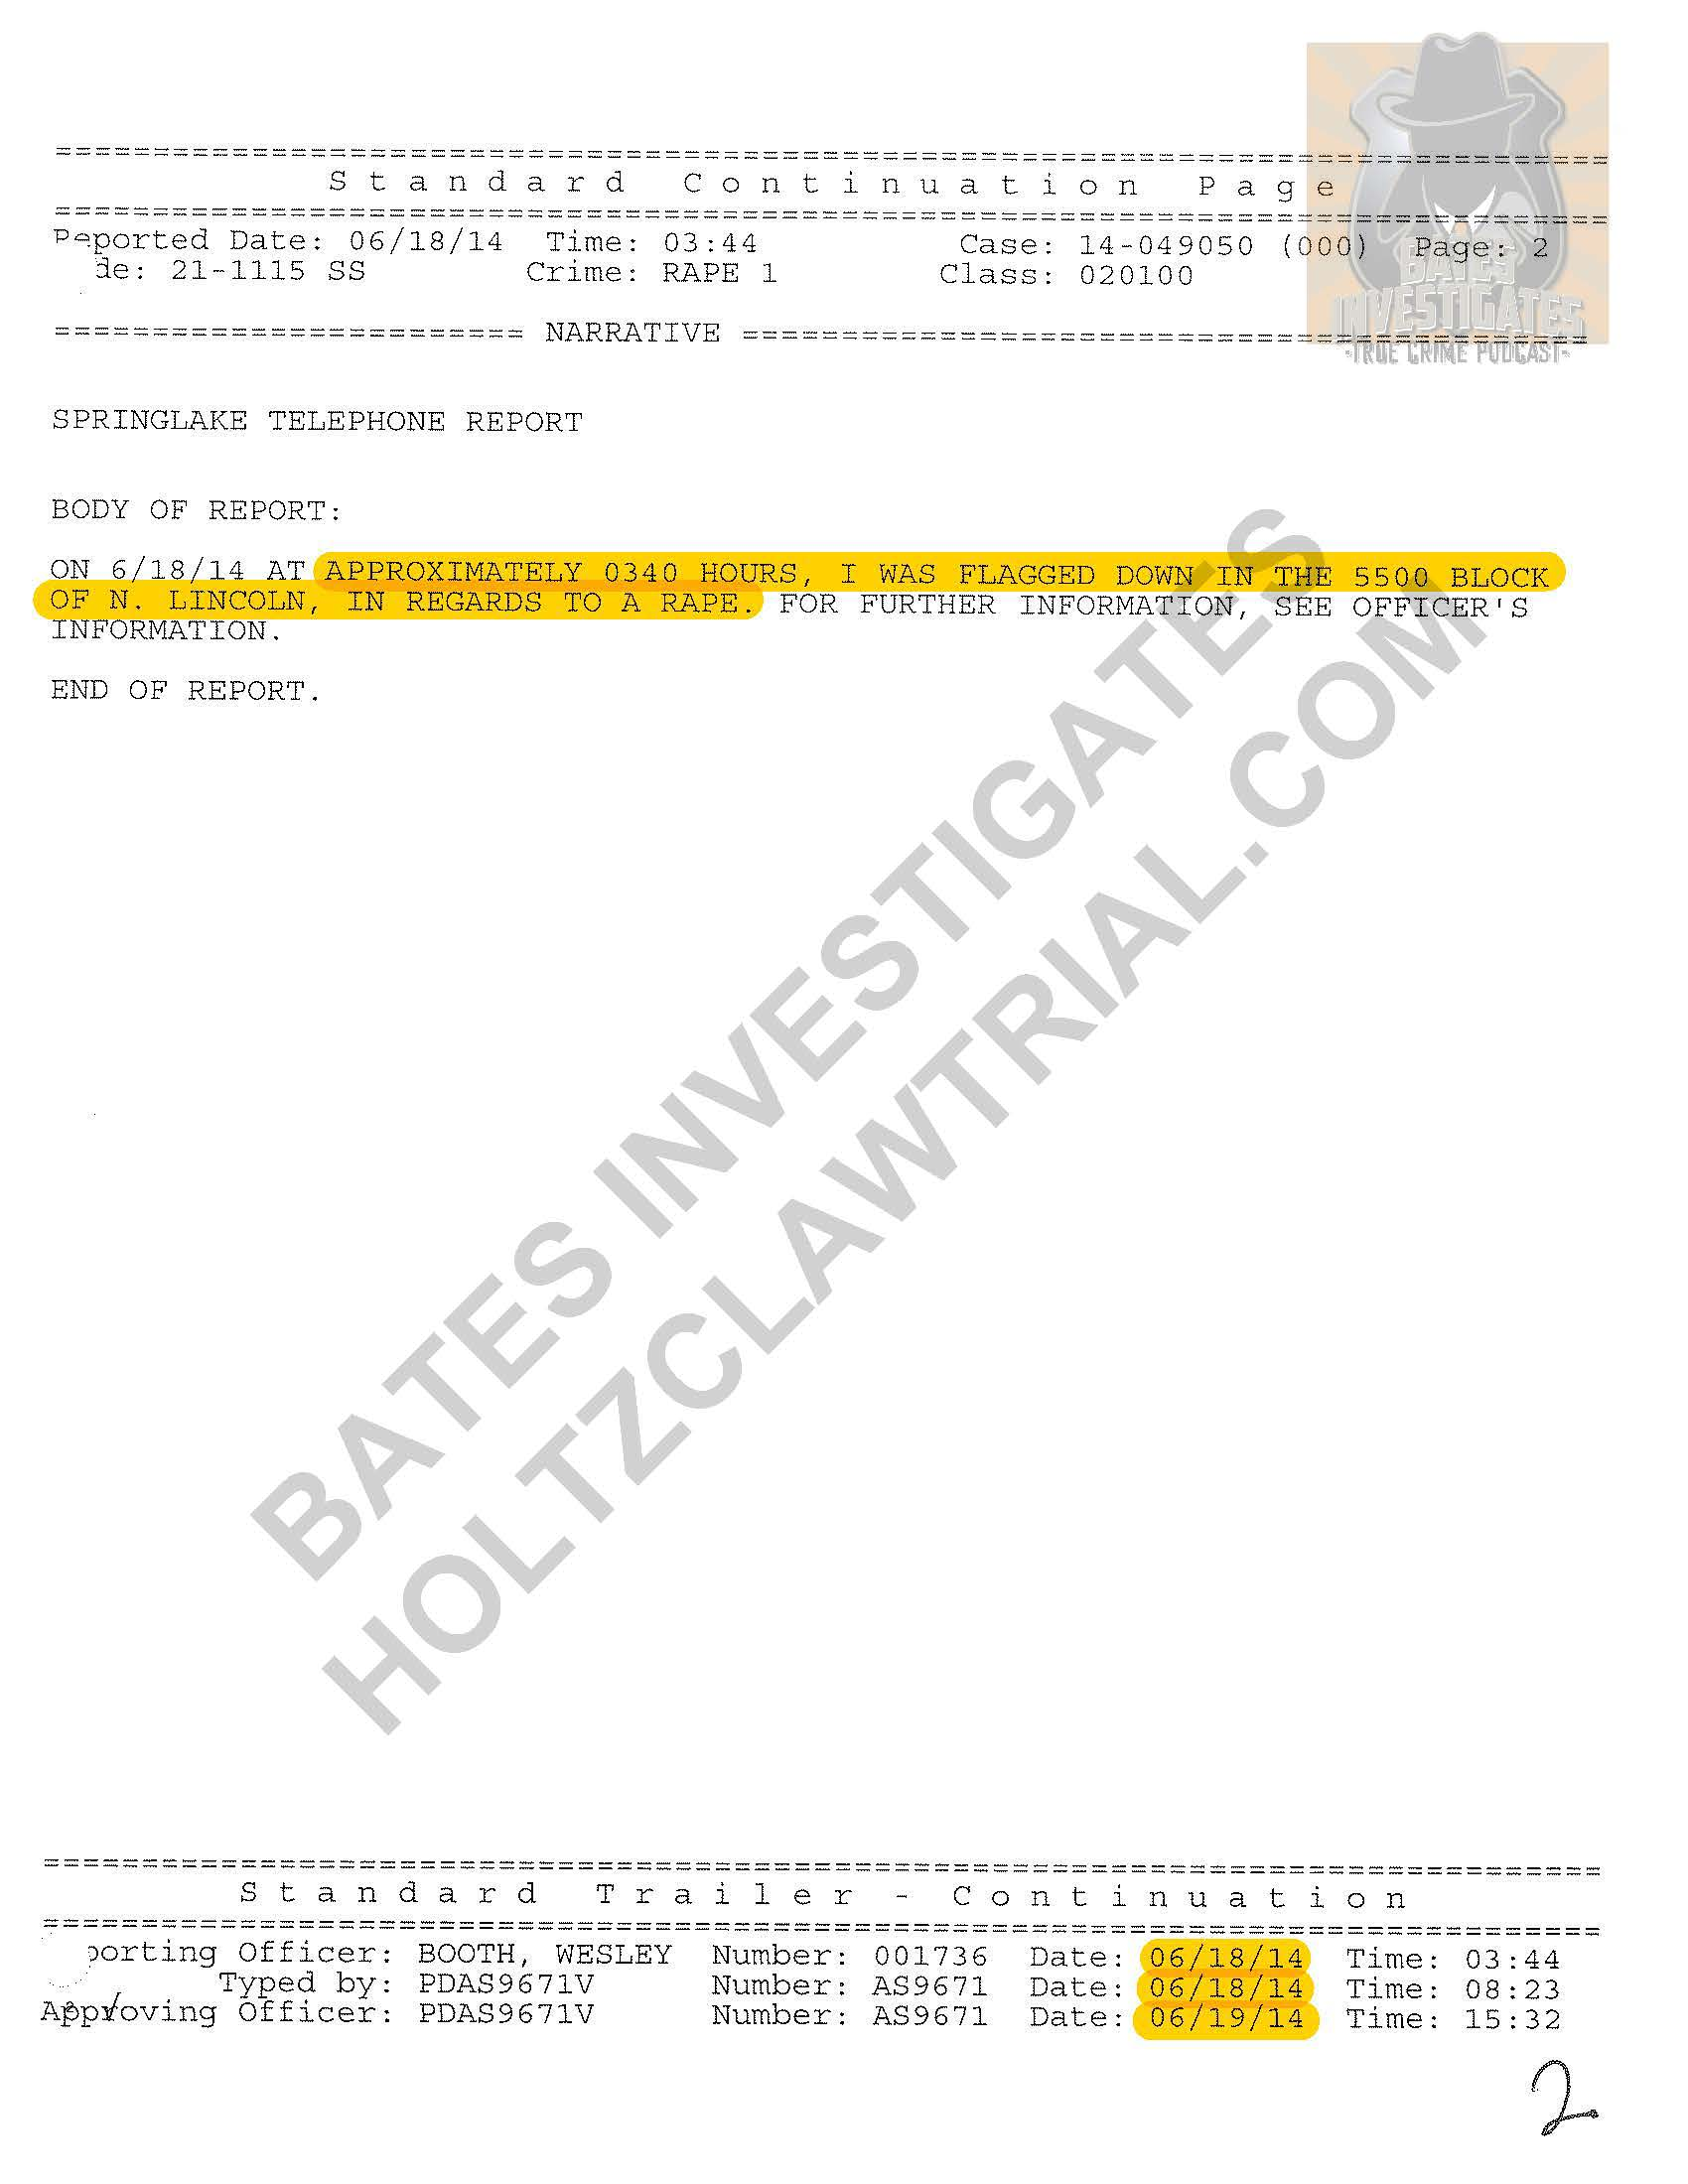 Holtzclaw - Ep02 - Police Reports Watermarked_Page_05.jpg